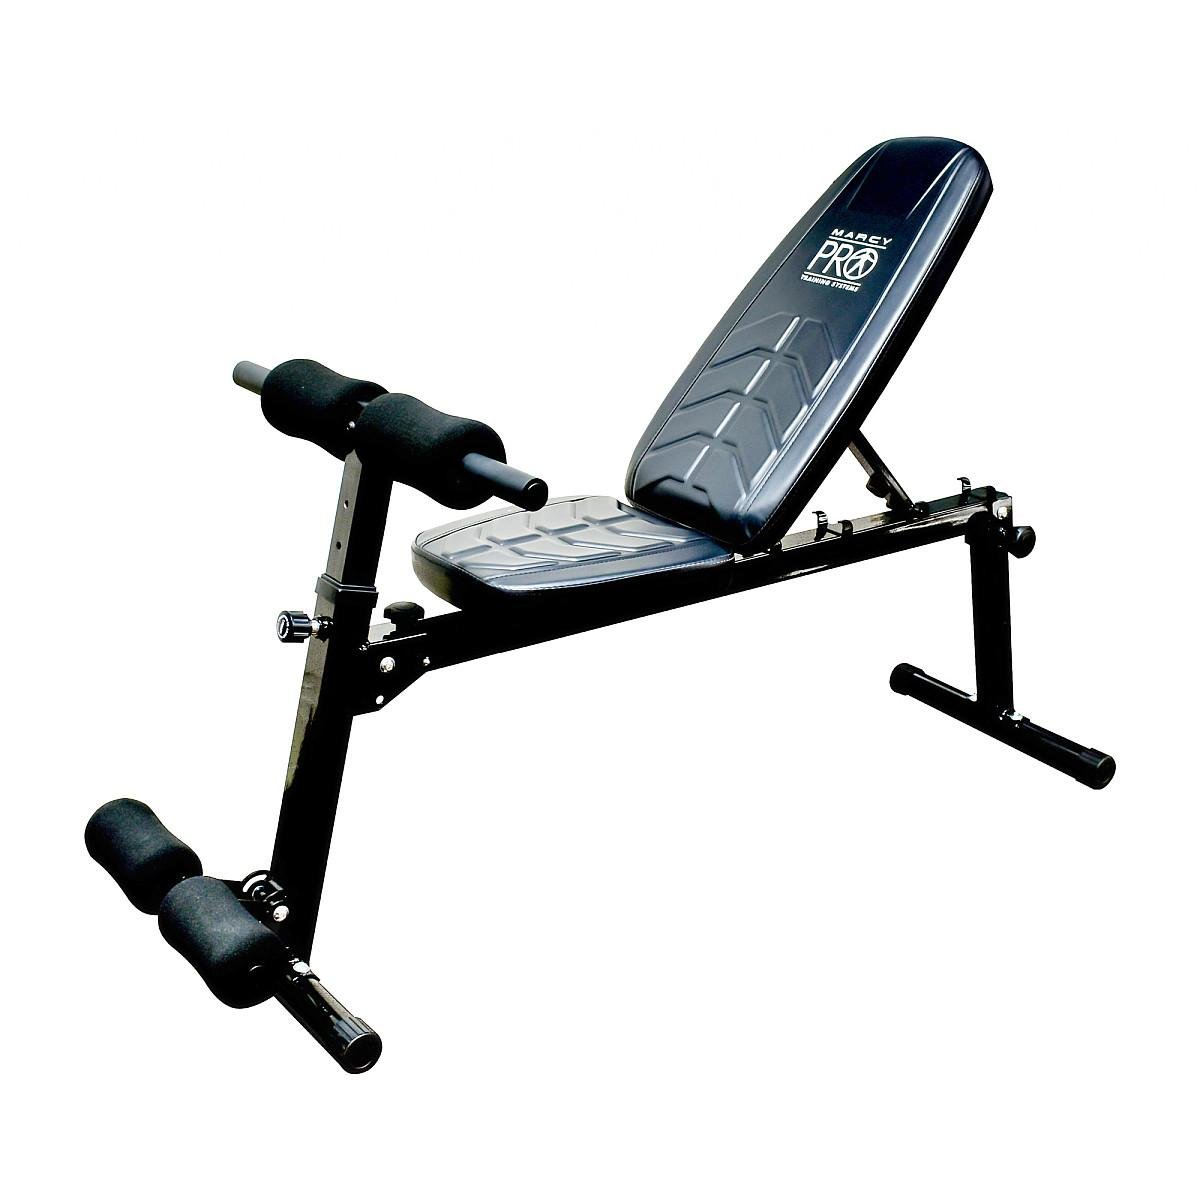 MARCY PRO UTILITY BENCH